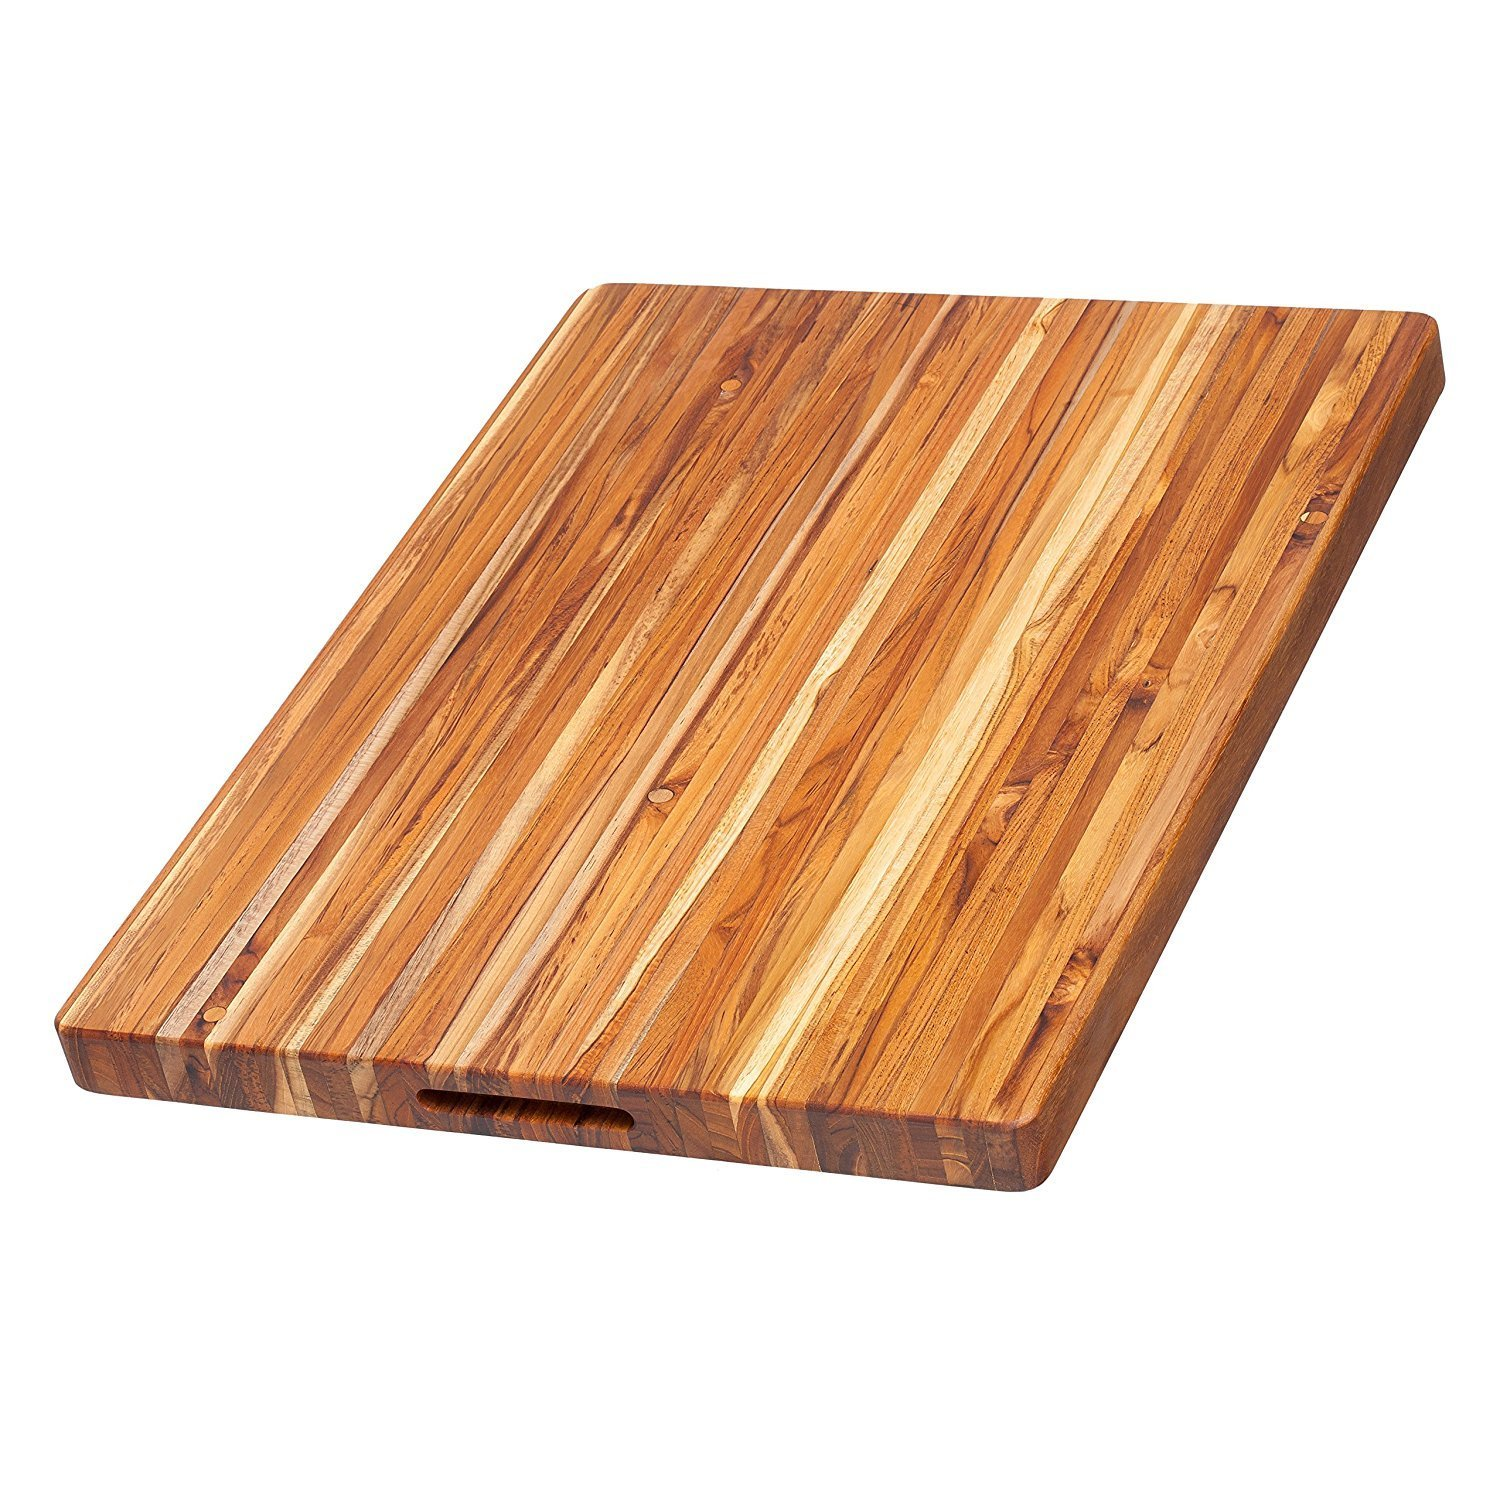 teak-cutting board-rectangle-carving-board-hand-grip-best-wood-cutting-boards-reviews